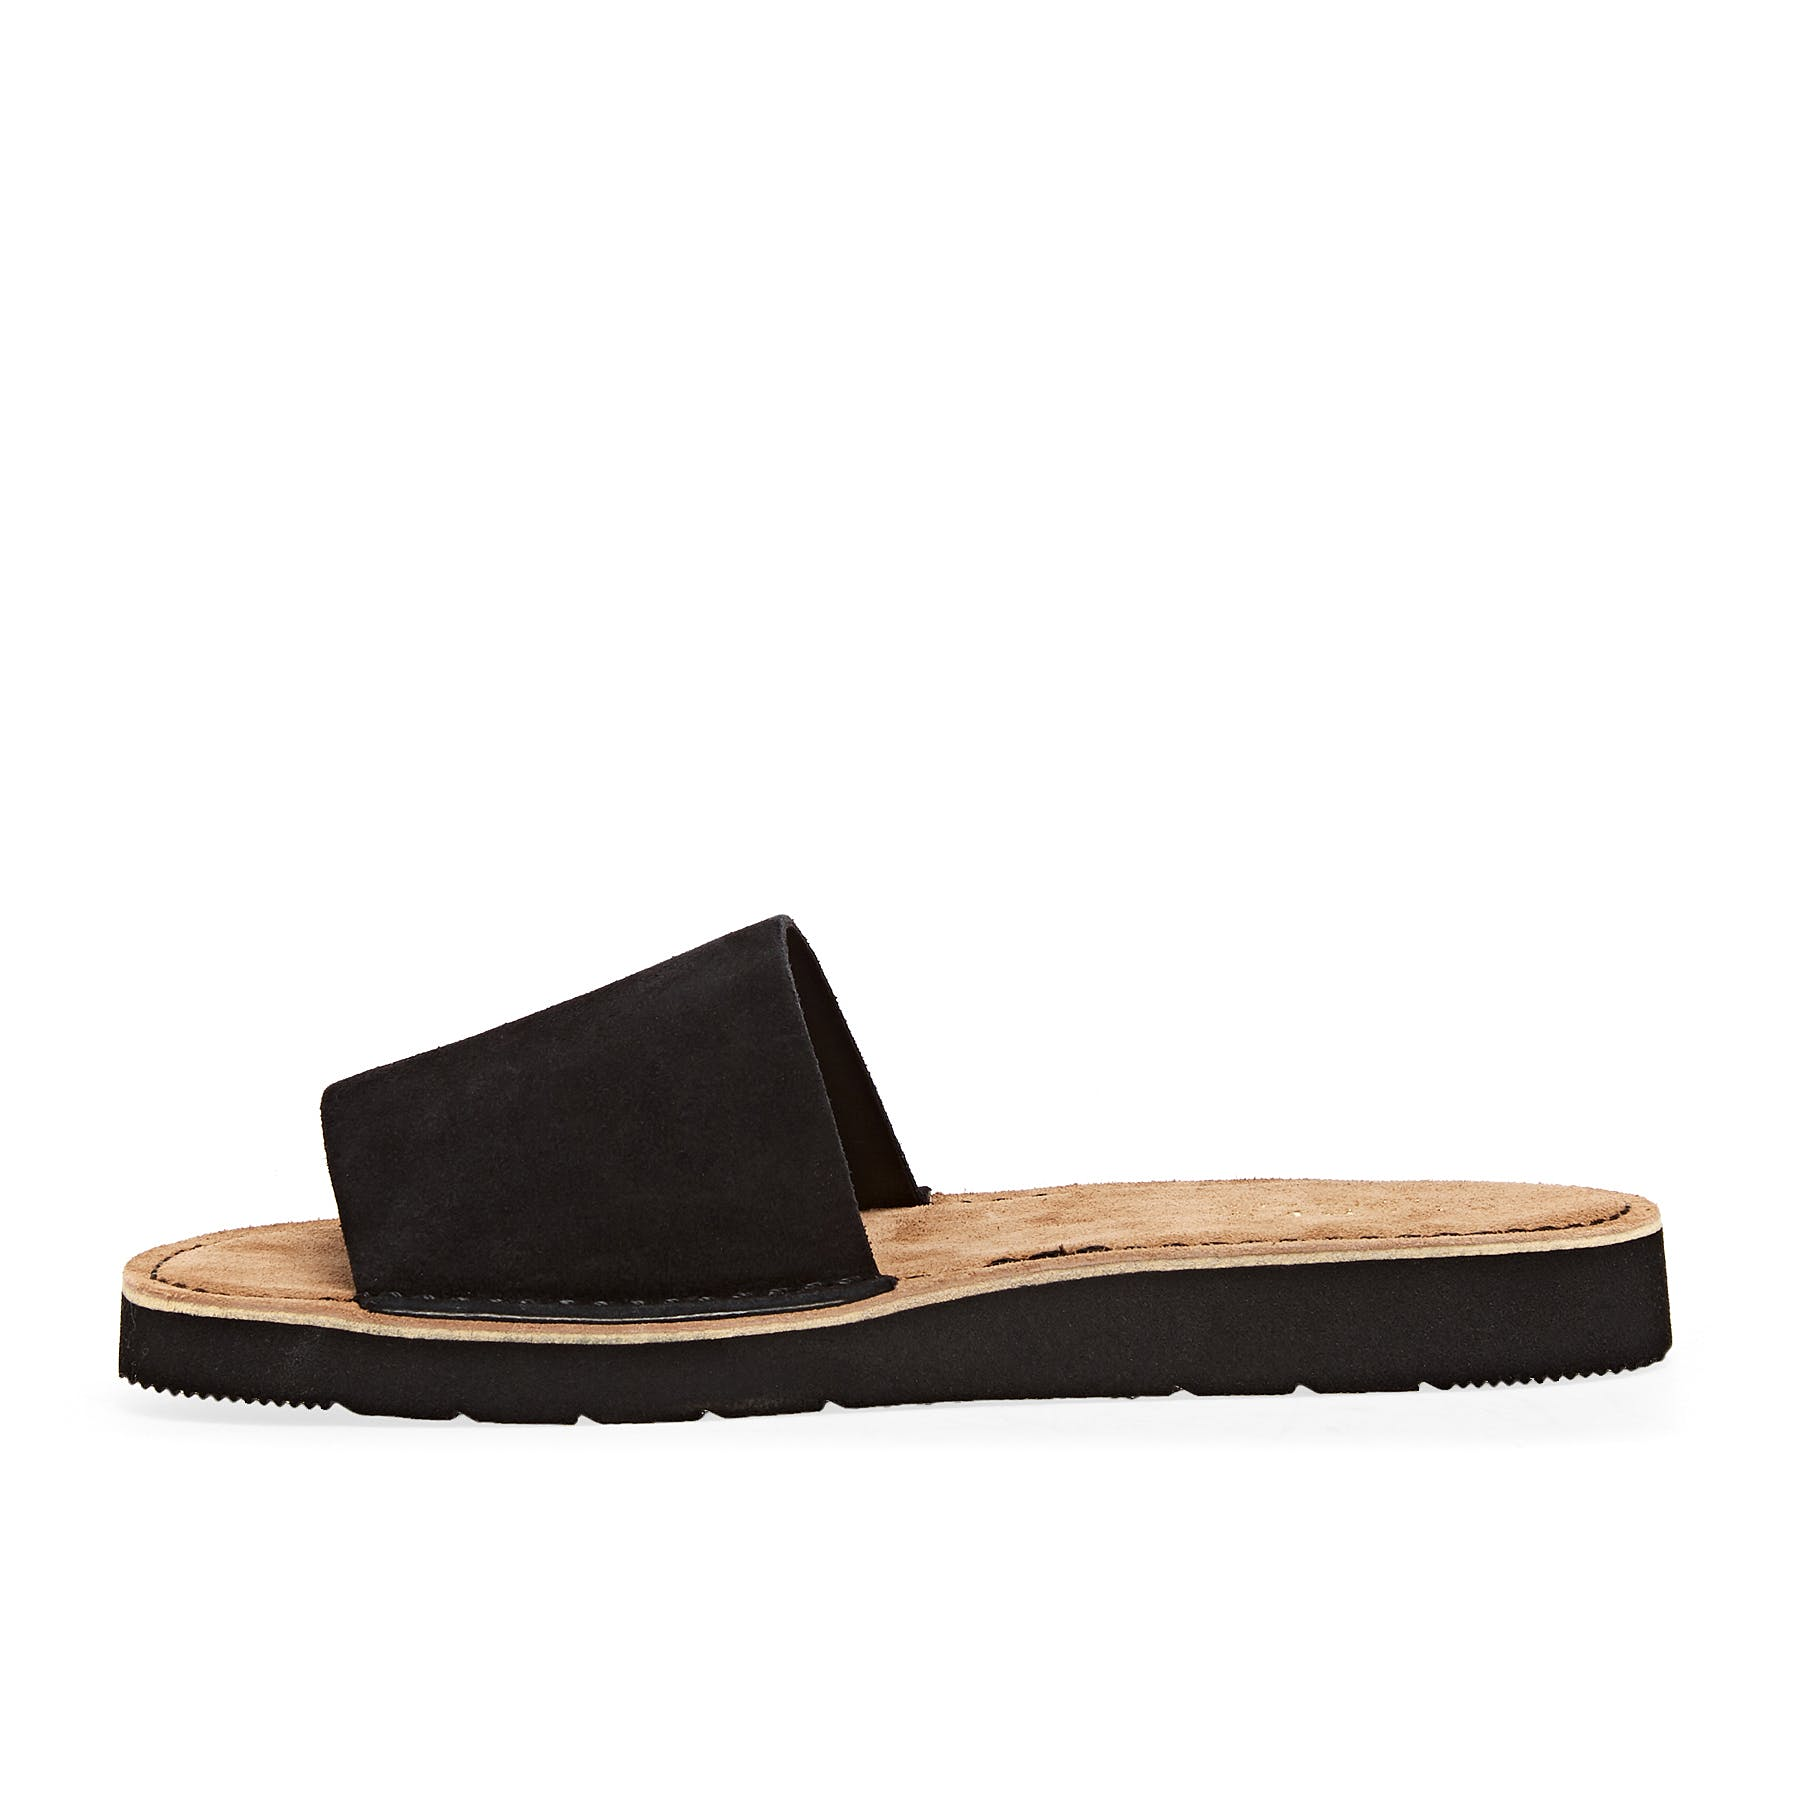 Black Suede All Sizes Clarks Originals Lunan Womens Footwear Sliders